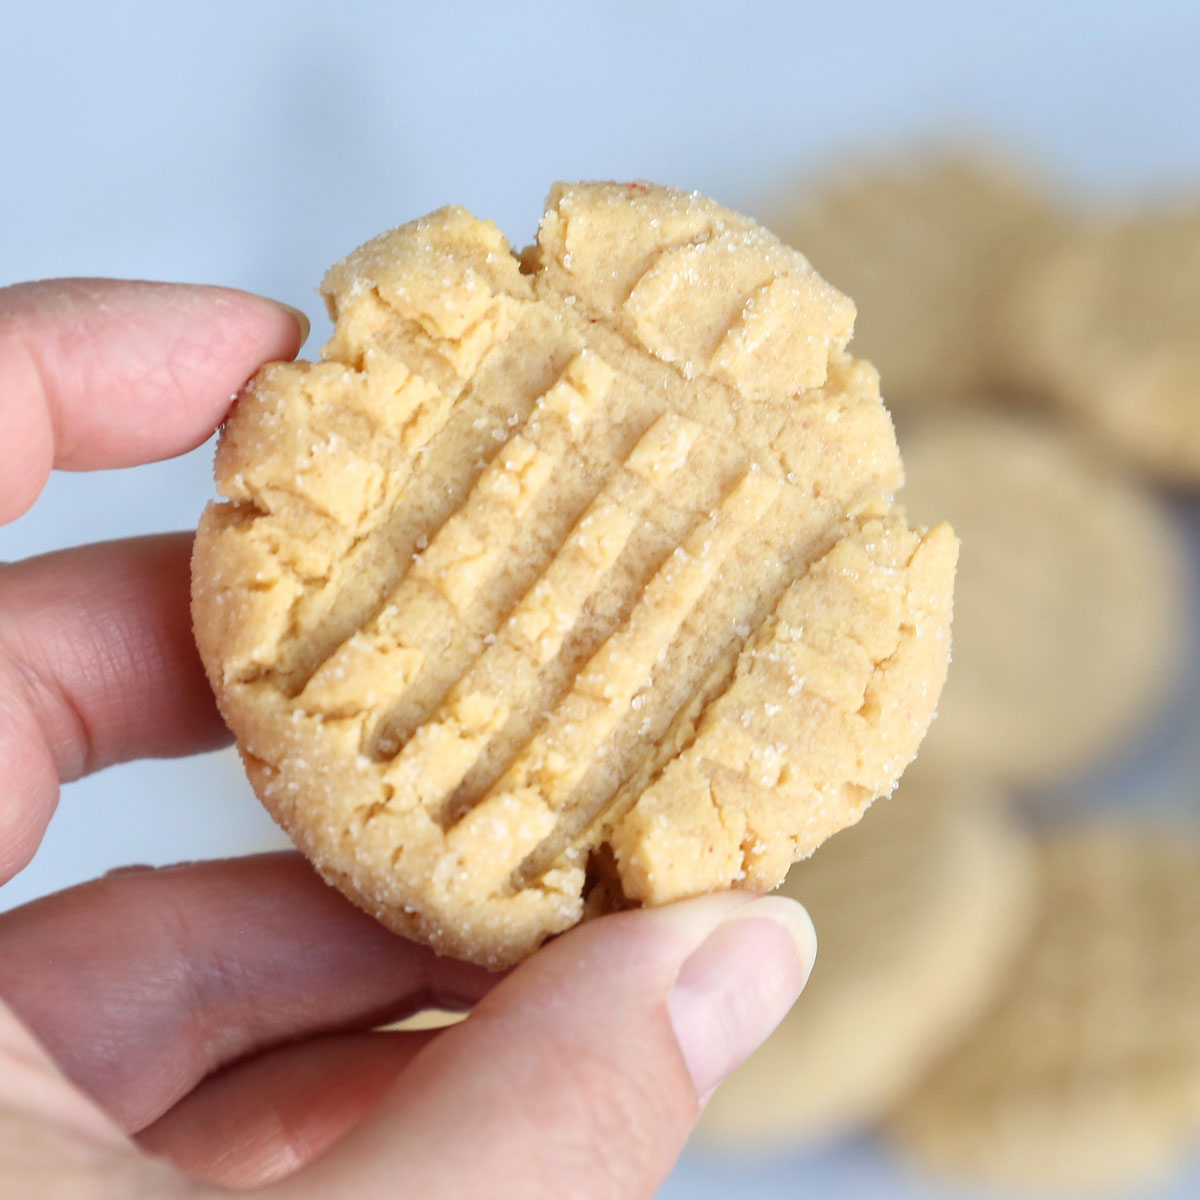 Hand holding a peanut butter cookie